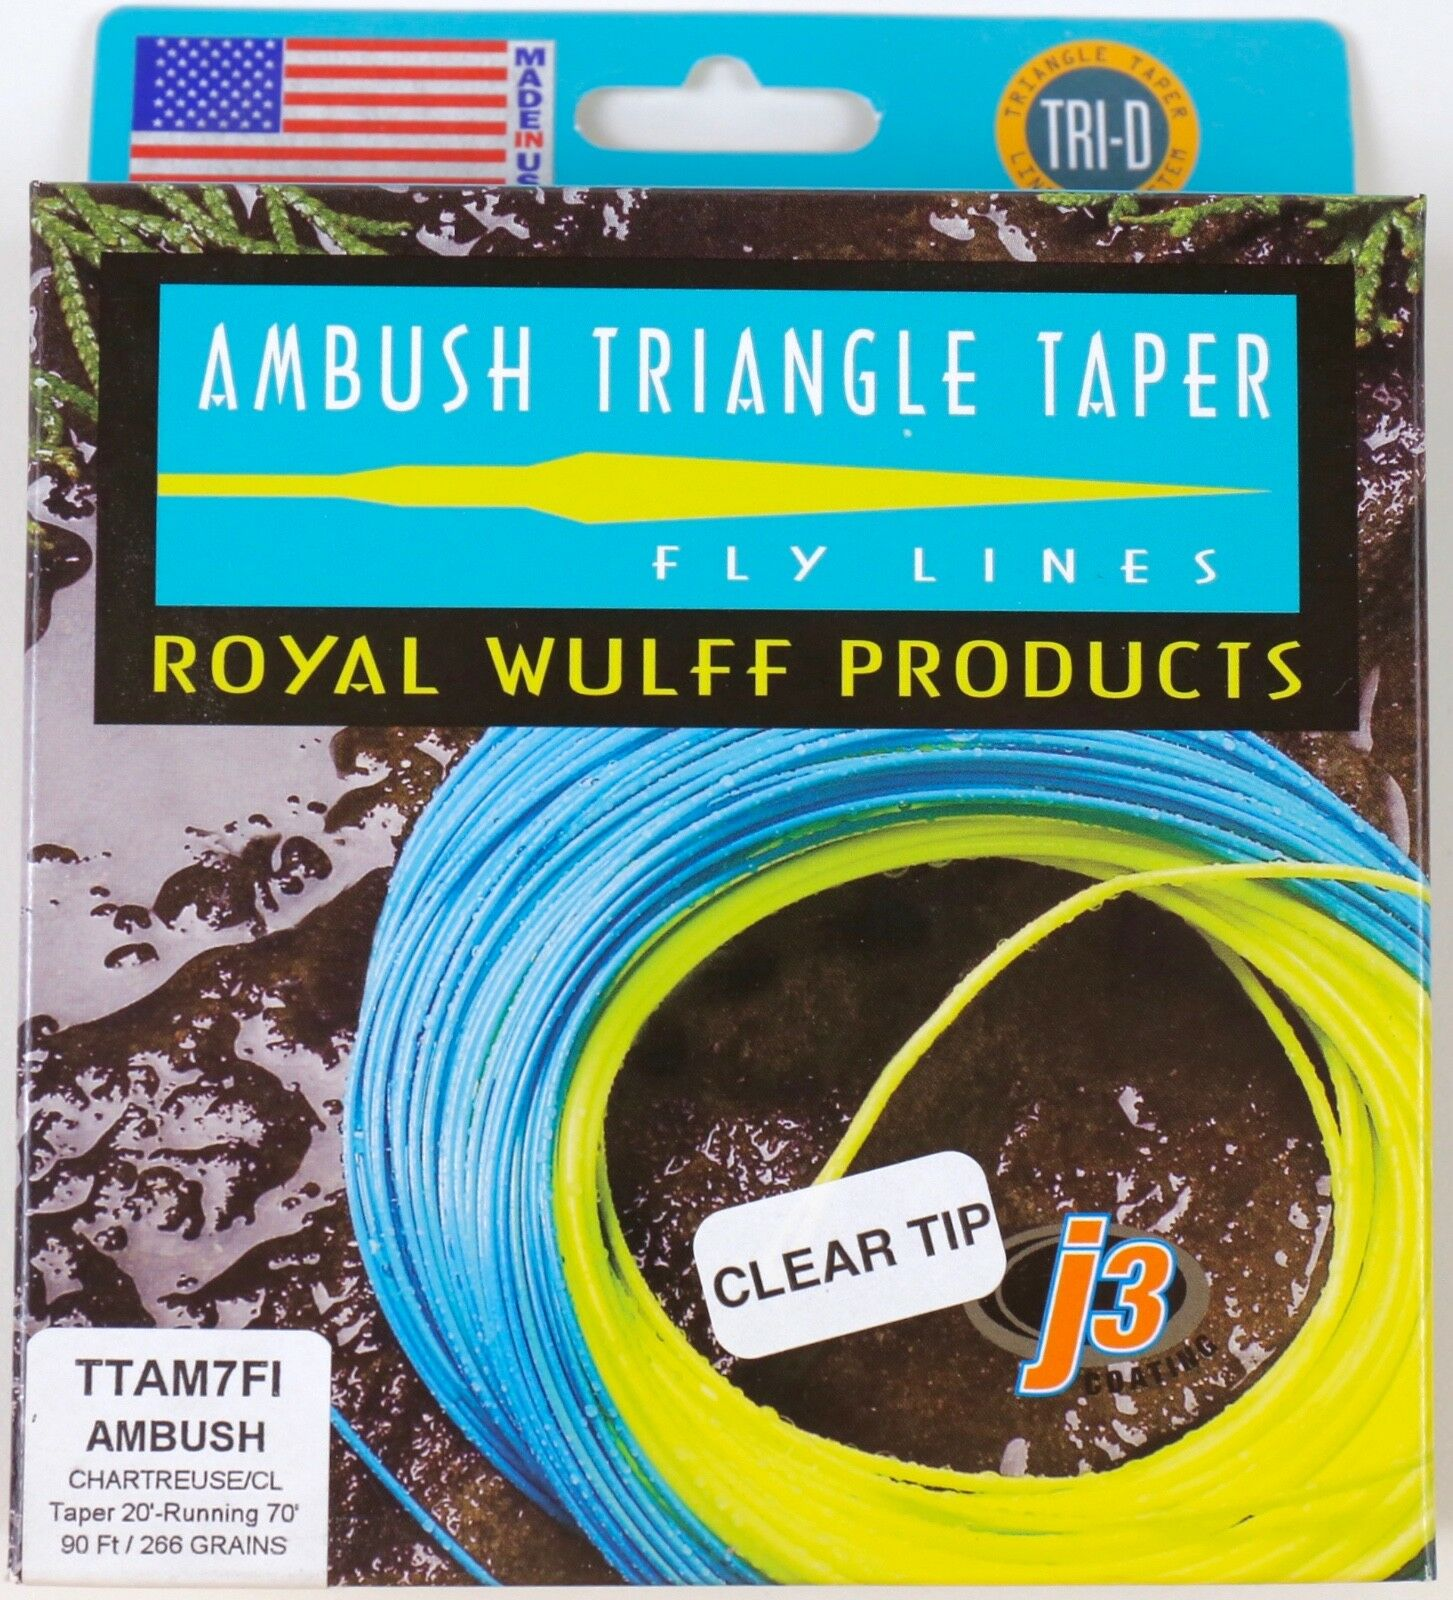 Royal Wulff Ambush Taper Clear Tip 7 Weight Fly Line Free Fast Shipping TTAM7FI